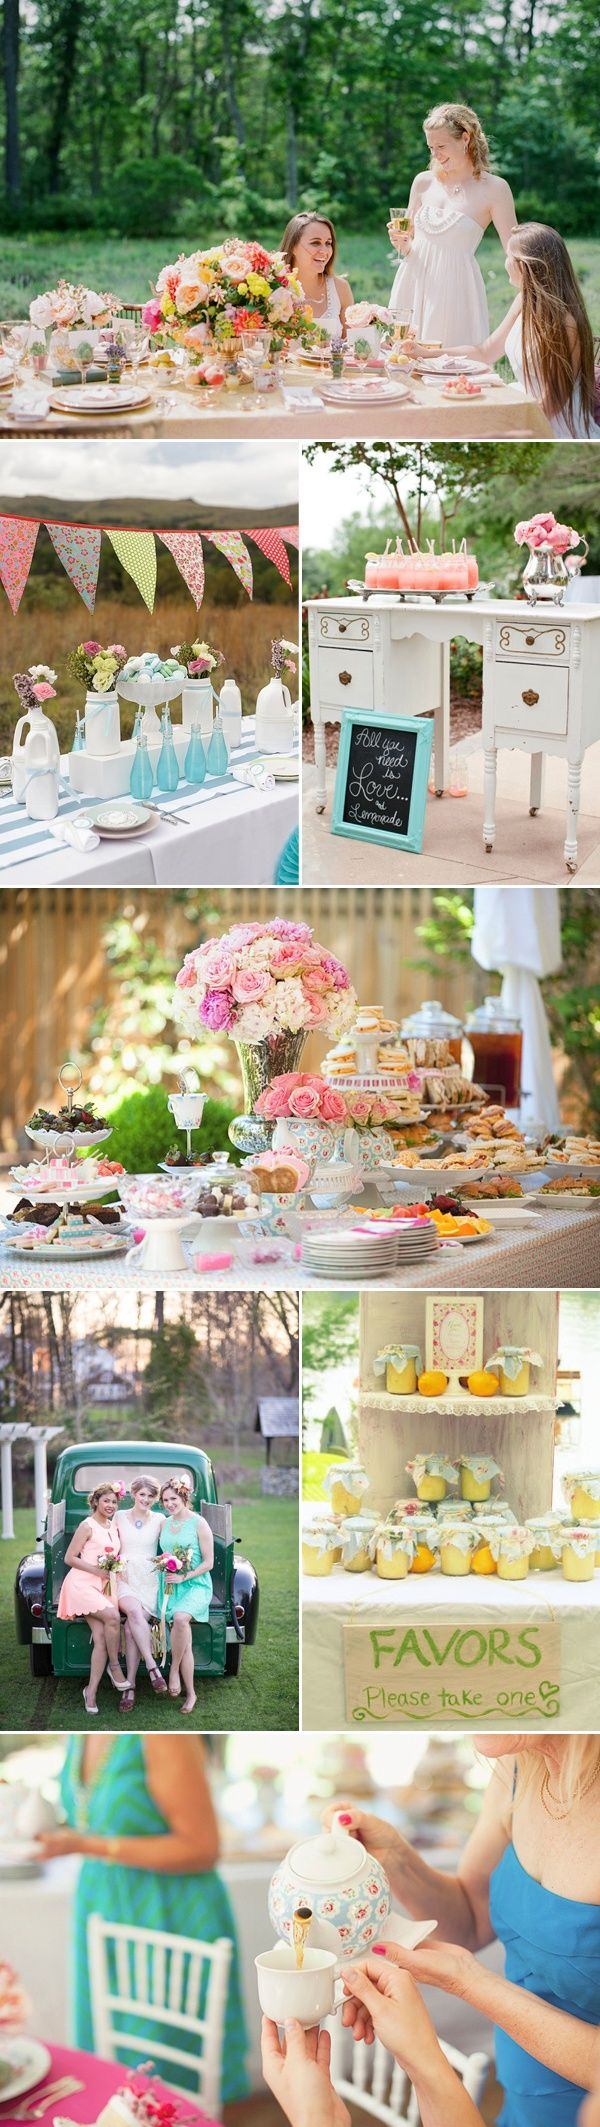 Tea party Chic Bridal Shower Themes the Bride Will Love - Wedding Party